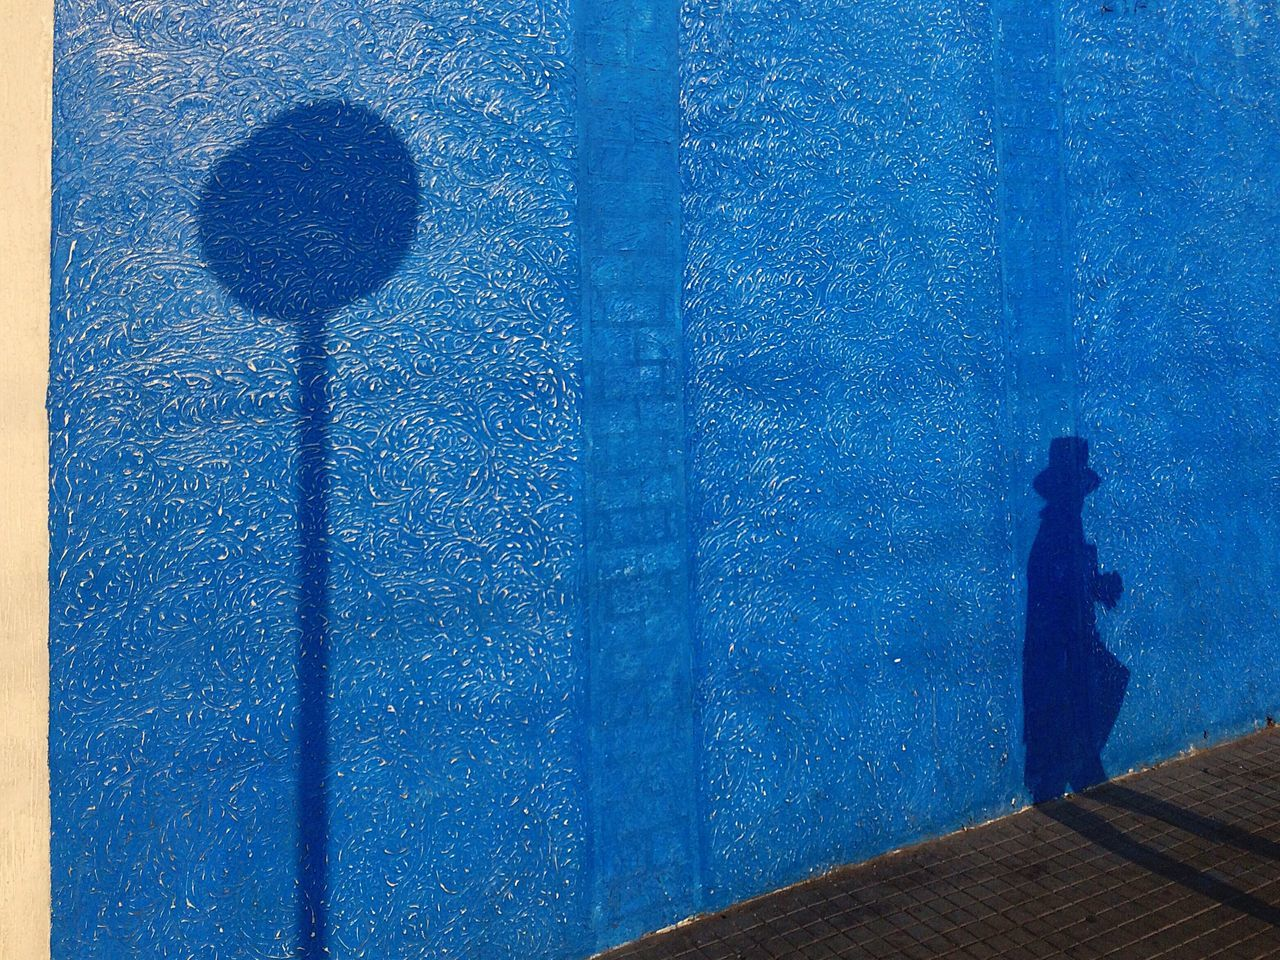 Shadow of person blue wall